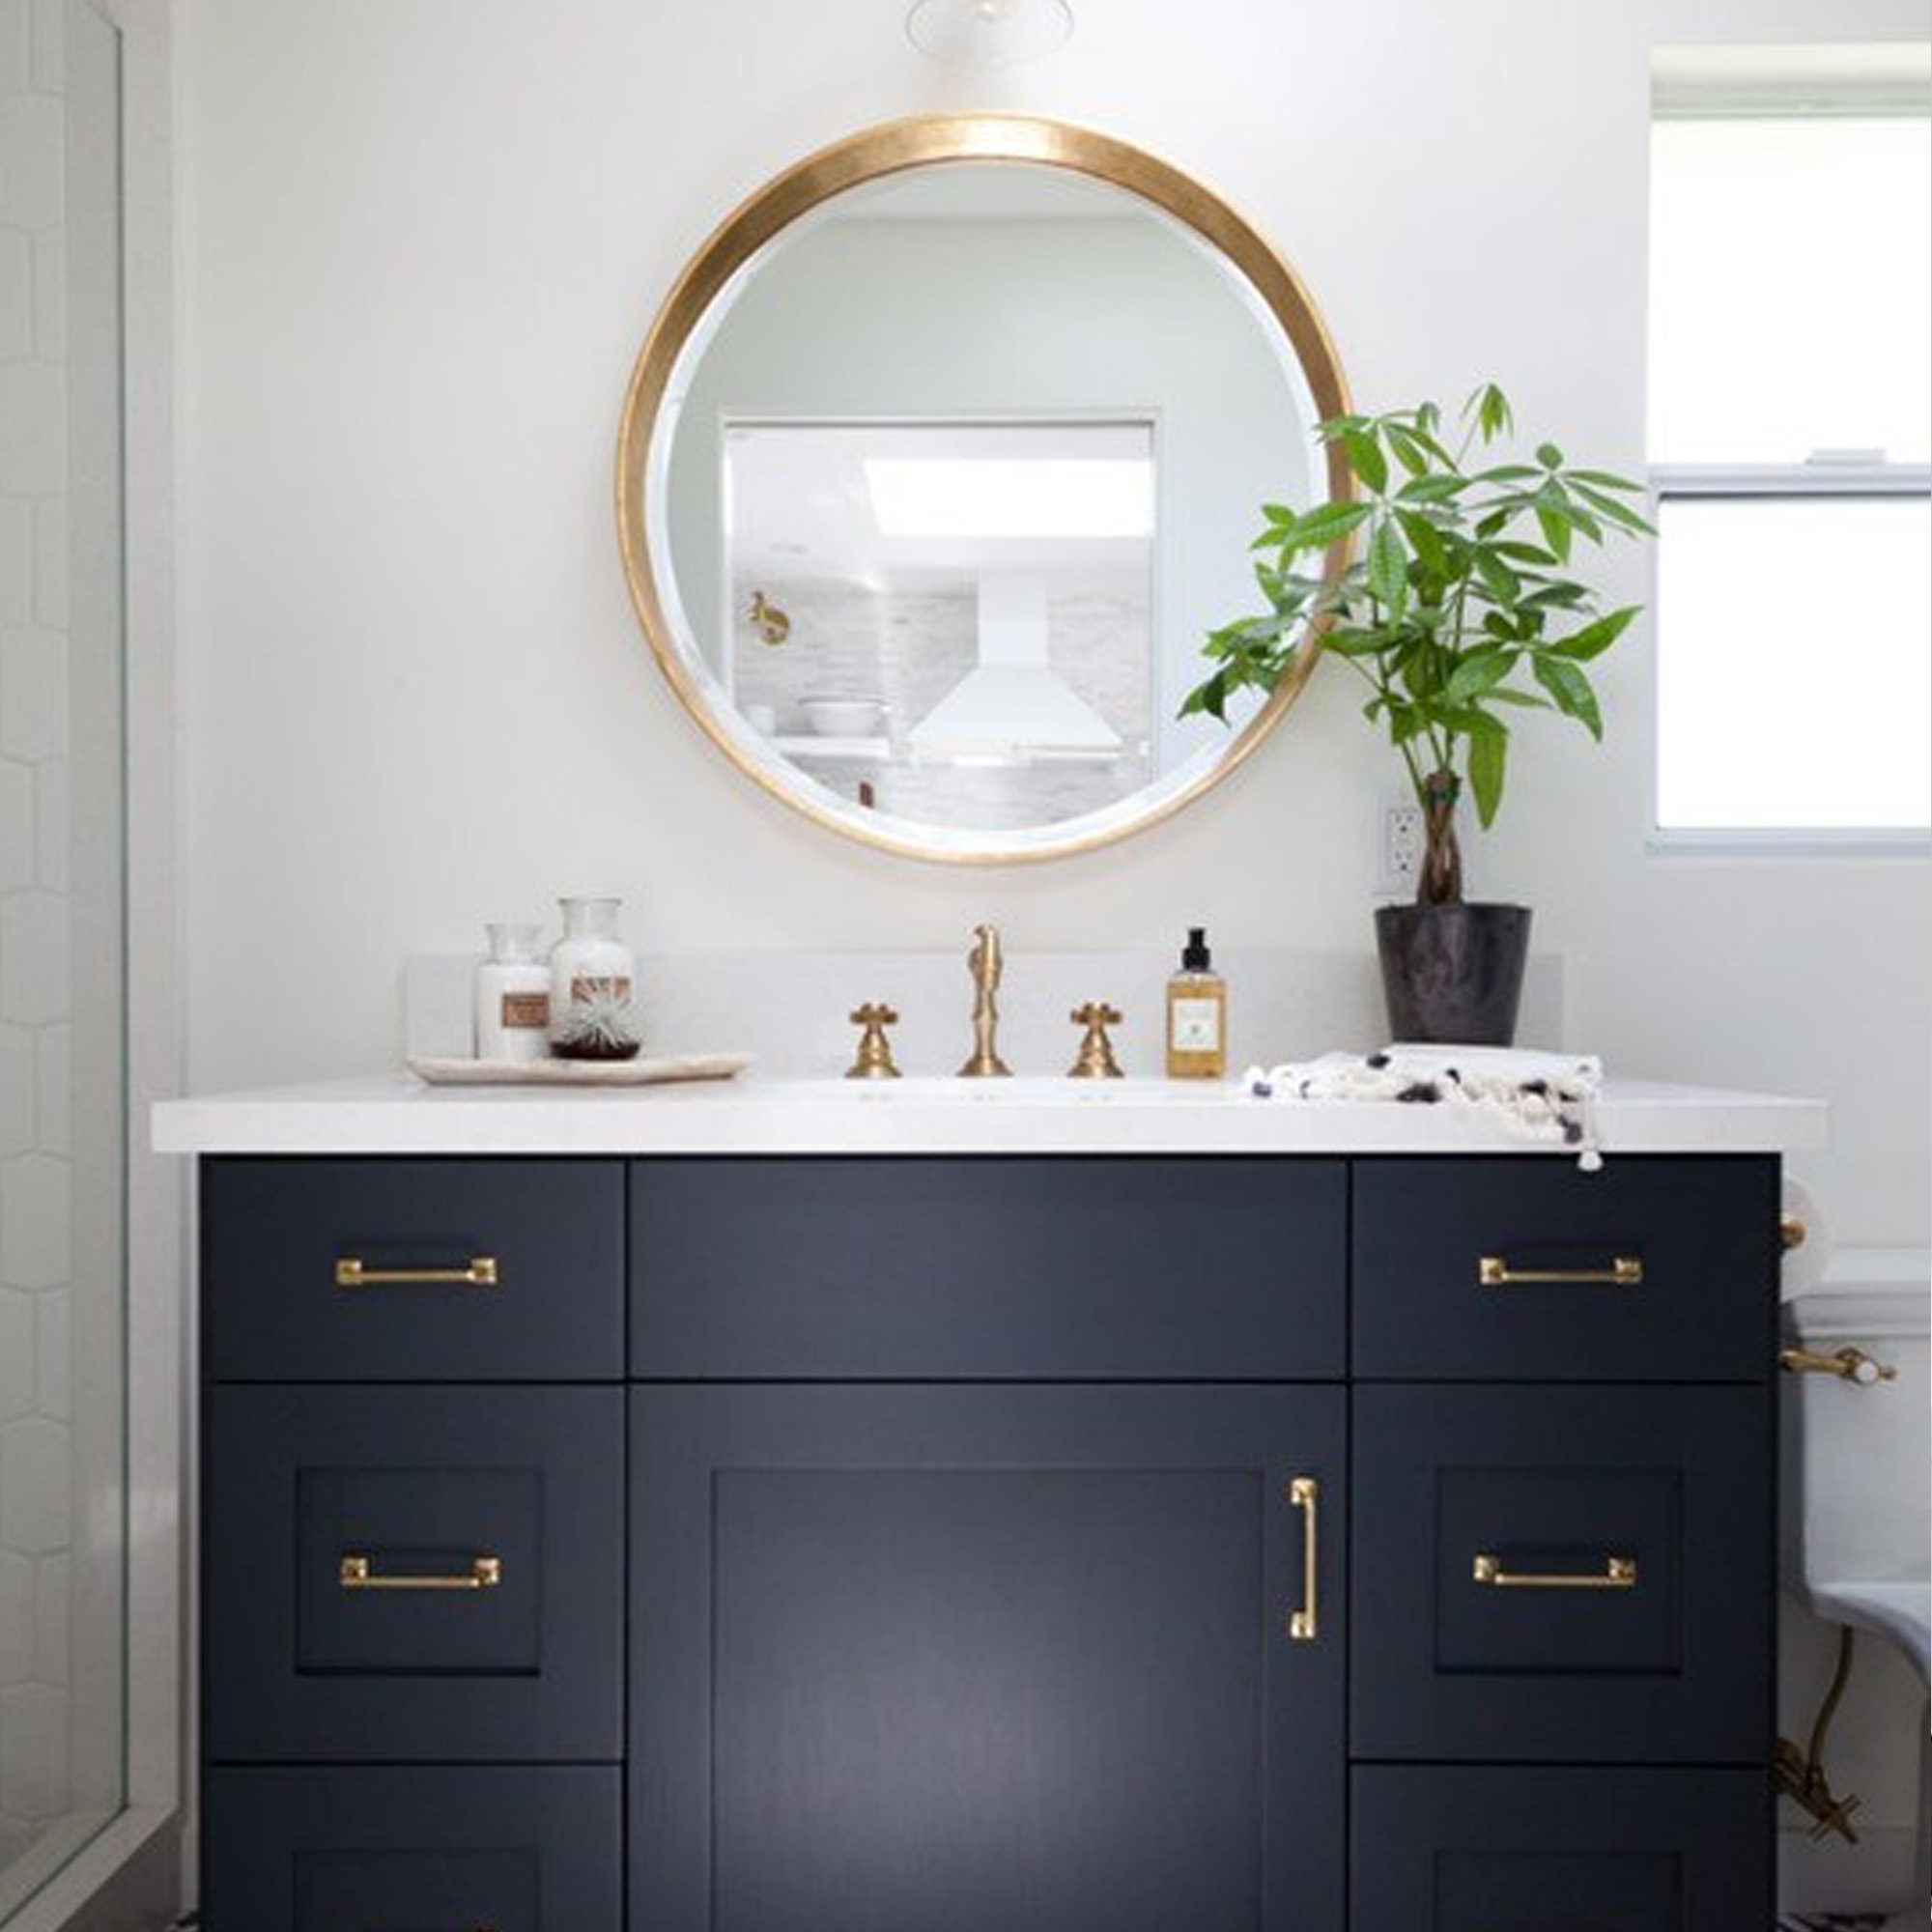 How High To Place Your Bathroom Fixtures Inspired Style Counter Model Requires Plumbing And Electrical Work Under Sink